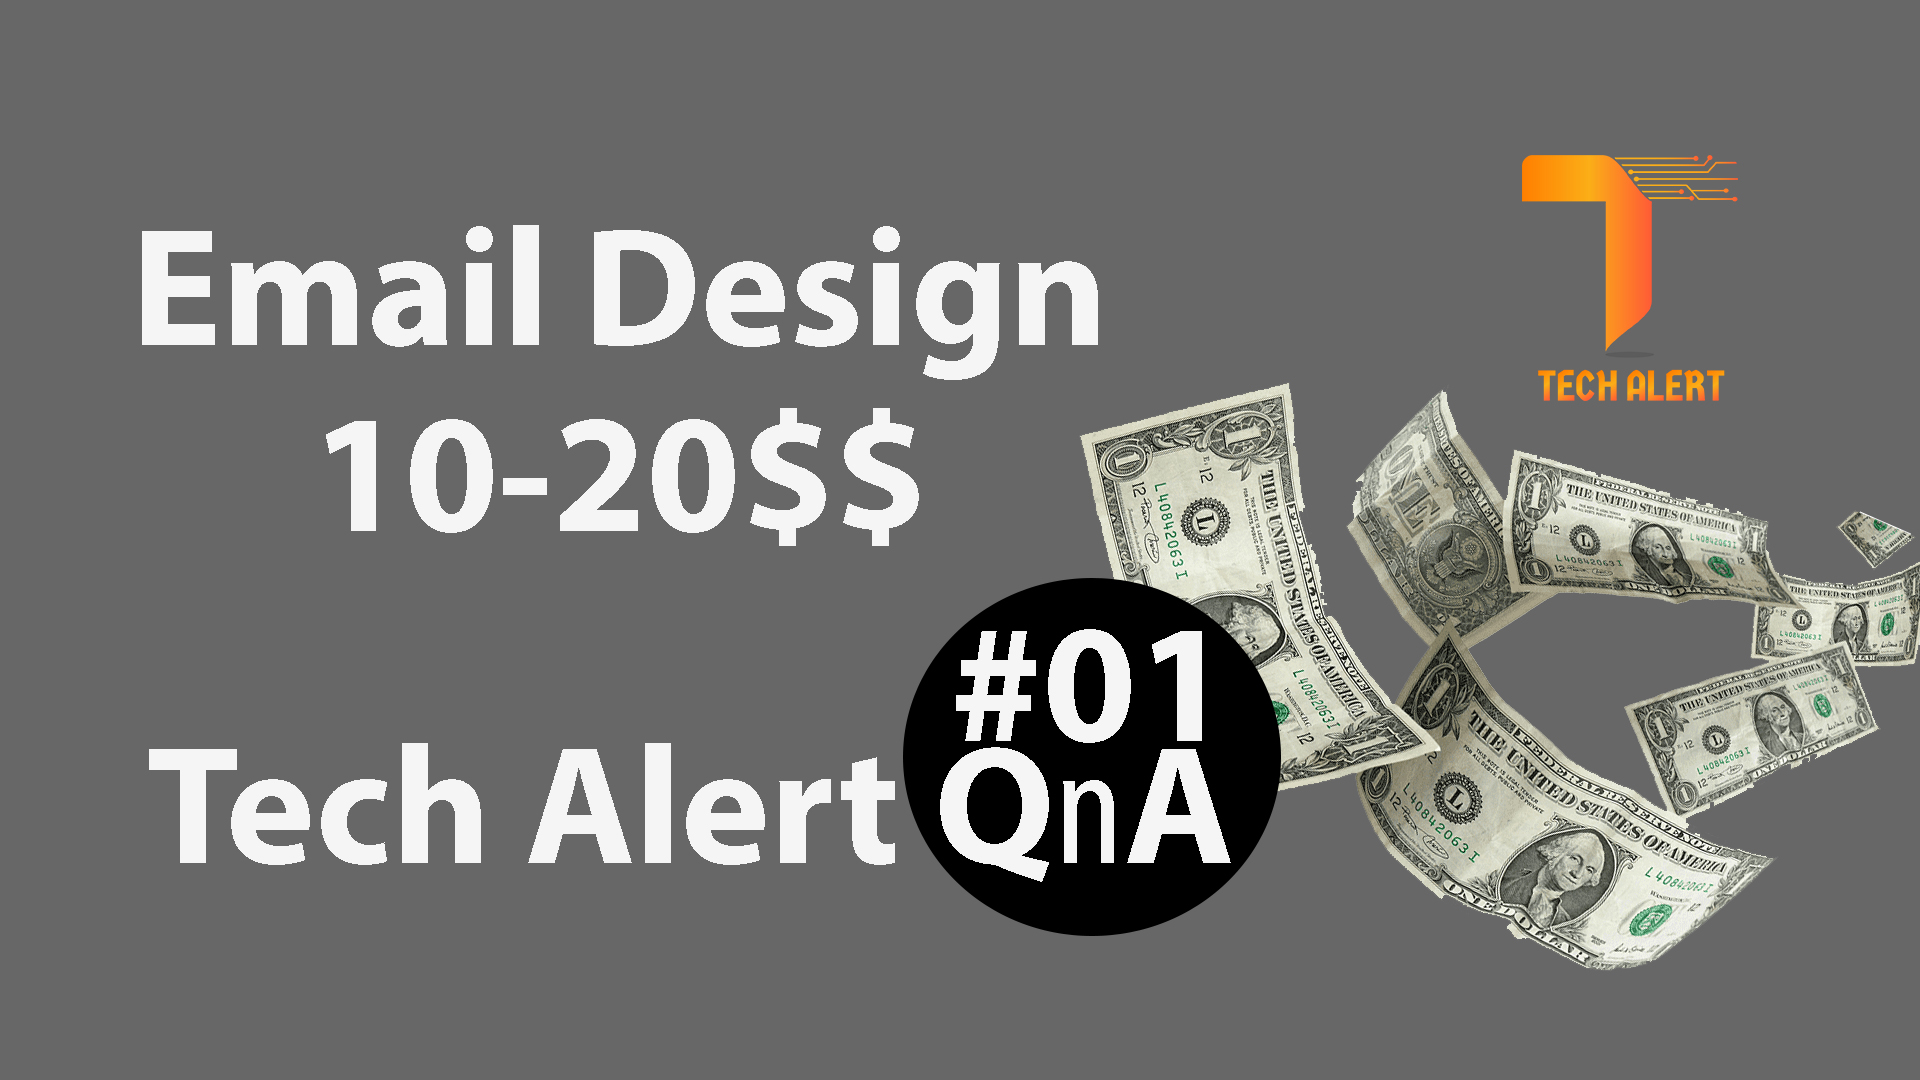 Email Template Design by Tech Alert QnA